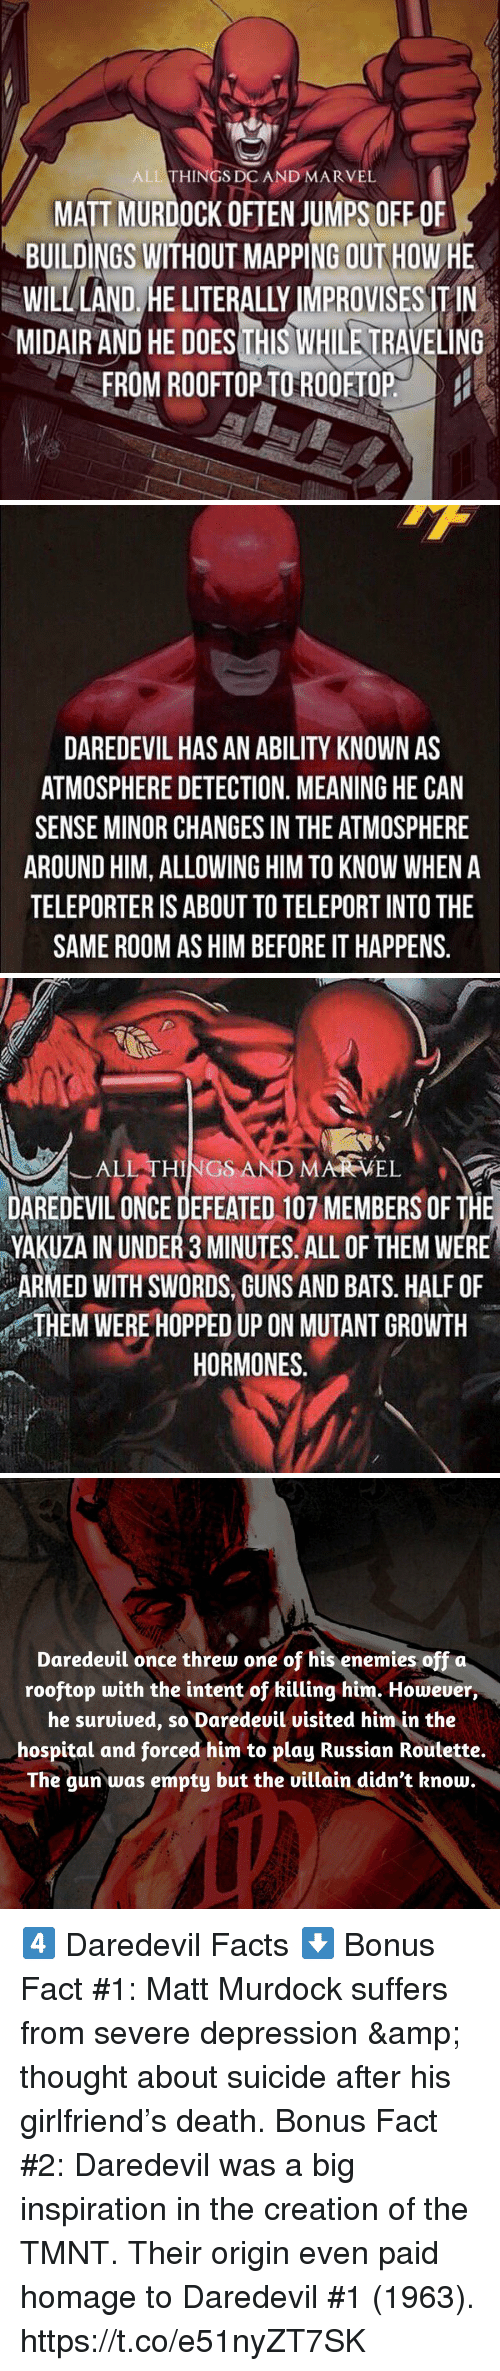 Facts, Guns, and Memes: ALL THINGS DC AND MARVEL  MATT MURDOCK OFTEN JUMPS OFF OF  BUILDINGS WITHOUT MAPPING OUT HOW HE  WILL AND HE LITERALY IMPROVISES TIN  MIDAIR AND HE DOESTHIS WHILE TRAVELING  FROM ROOFTOP TOROOETOP   DAREDEVIL HAS AN ABILITY KNOWN AS  ATMOSPHERE DETECTION. MEANING HE CAN  SENSE MINOR CHANGES IN THE ATMOSPHERE  AROUND HIM, ALLOWING HIM TO KNOW WHEN A  TELEPORTER IS ABOUT TO TELEPORT INTO THE  SAME ROOM AS HIM BEFORE IT HAPPENS   ,  ーALI THINGS.AND MARVEL-  DAREDEVIL ONCE DEFEATED 107 MEMBERS OF THE  YAKUZA IN UNDER 3 MINUTES. ALL OF THEM WERE  ARMED WITH SWORD,GUNS AND BATS. HALF OF  HEM WERE HOPPED UP ON MUTANT GROWTH  HORMONES   Daredeuil once threw one of his enemies off  rooftop with the intent of killing him. However,  he suruiued, so Daredeuil uisited him in the  hospital and forced him to play Russian Routette.  The gun was empty but the uillain didn't know. 4️⃣ Daredevil Facts ⬇️  Bonus Fact #1: Matt Murdock suffers from severe depression & thought about suicide after his girlfriend's death.  Bonus Fact #2: Daredevil was a big inspiration in the creation of the TMNT. Their origin even paid homage to Daredevil #1 (1963). https://t.co/e51nyZT7SK